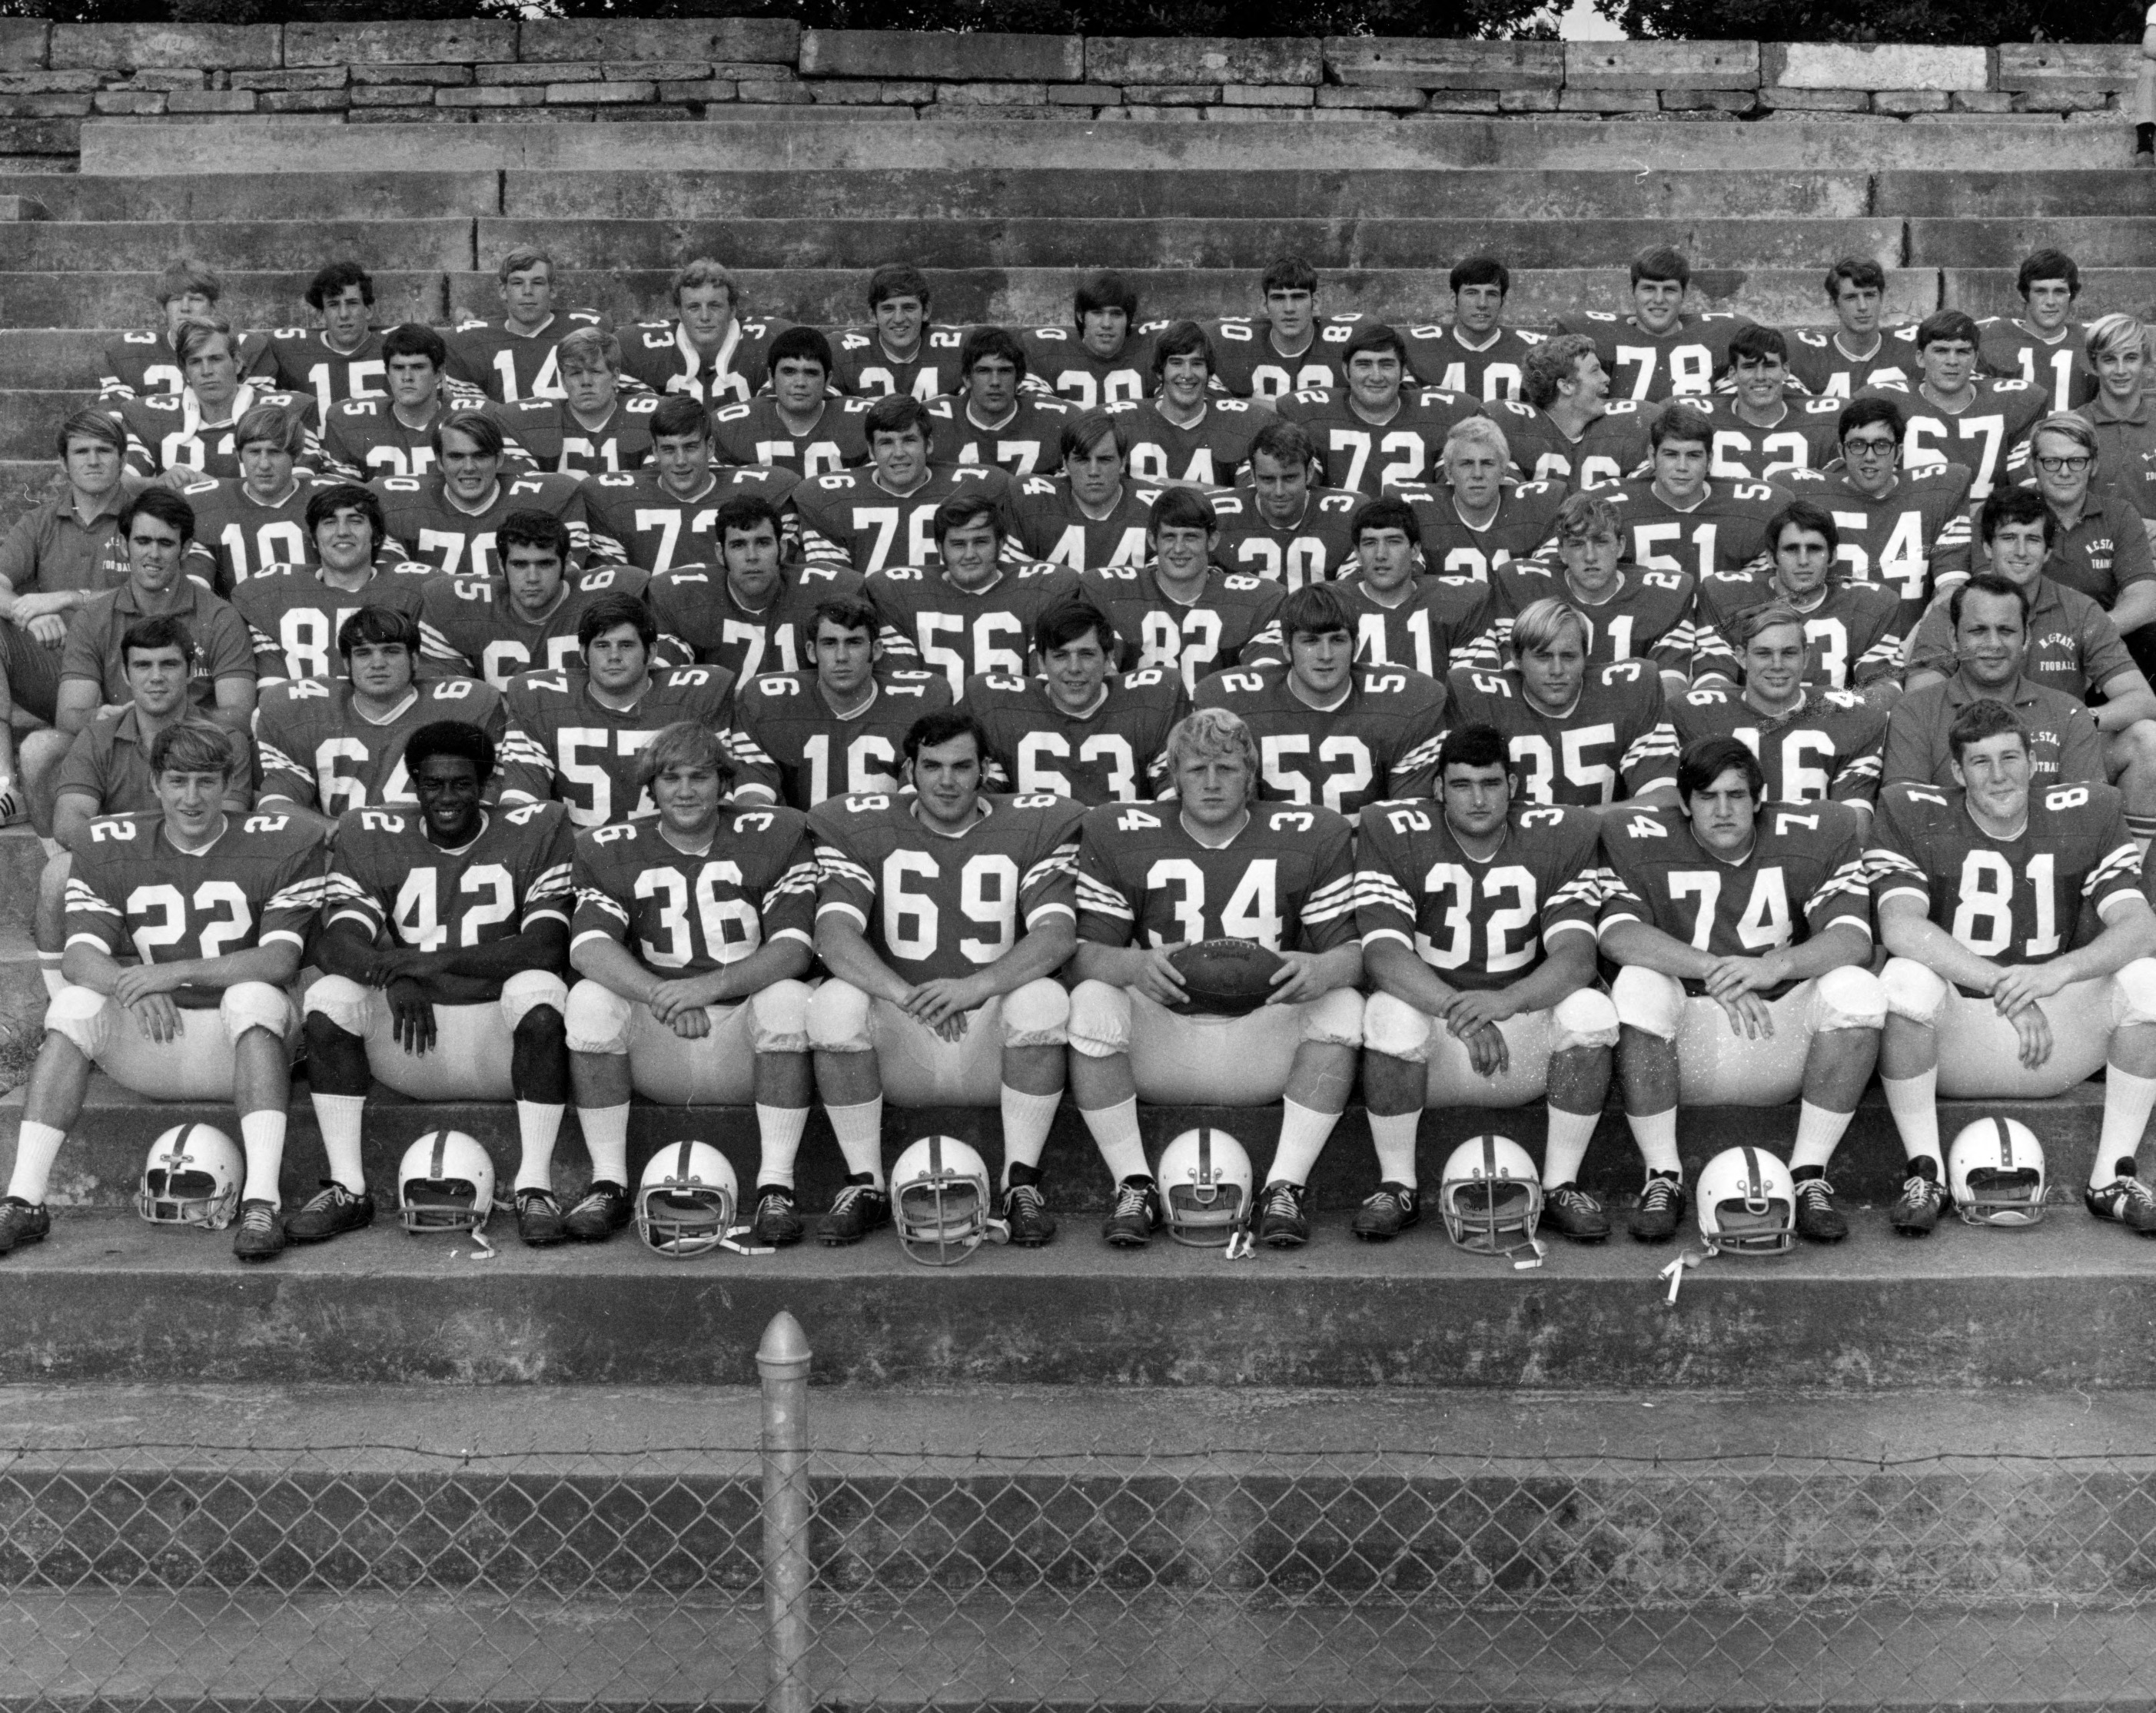 North Carolina State University Freshman Football Team group photograph